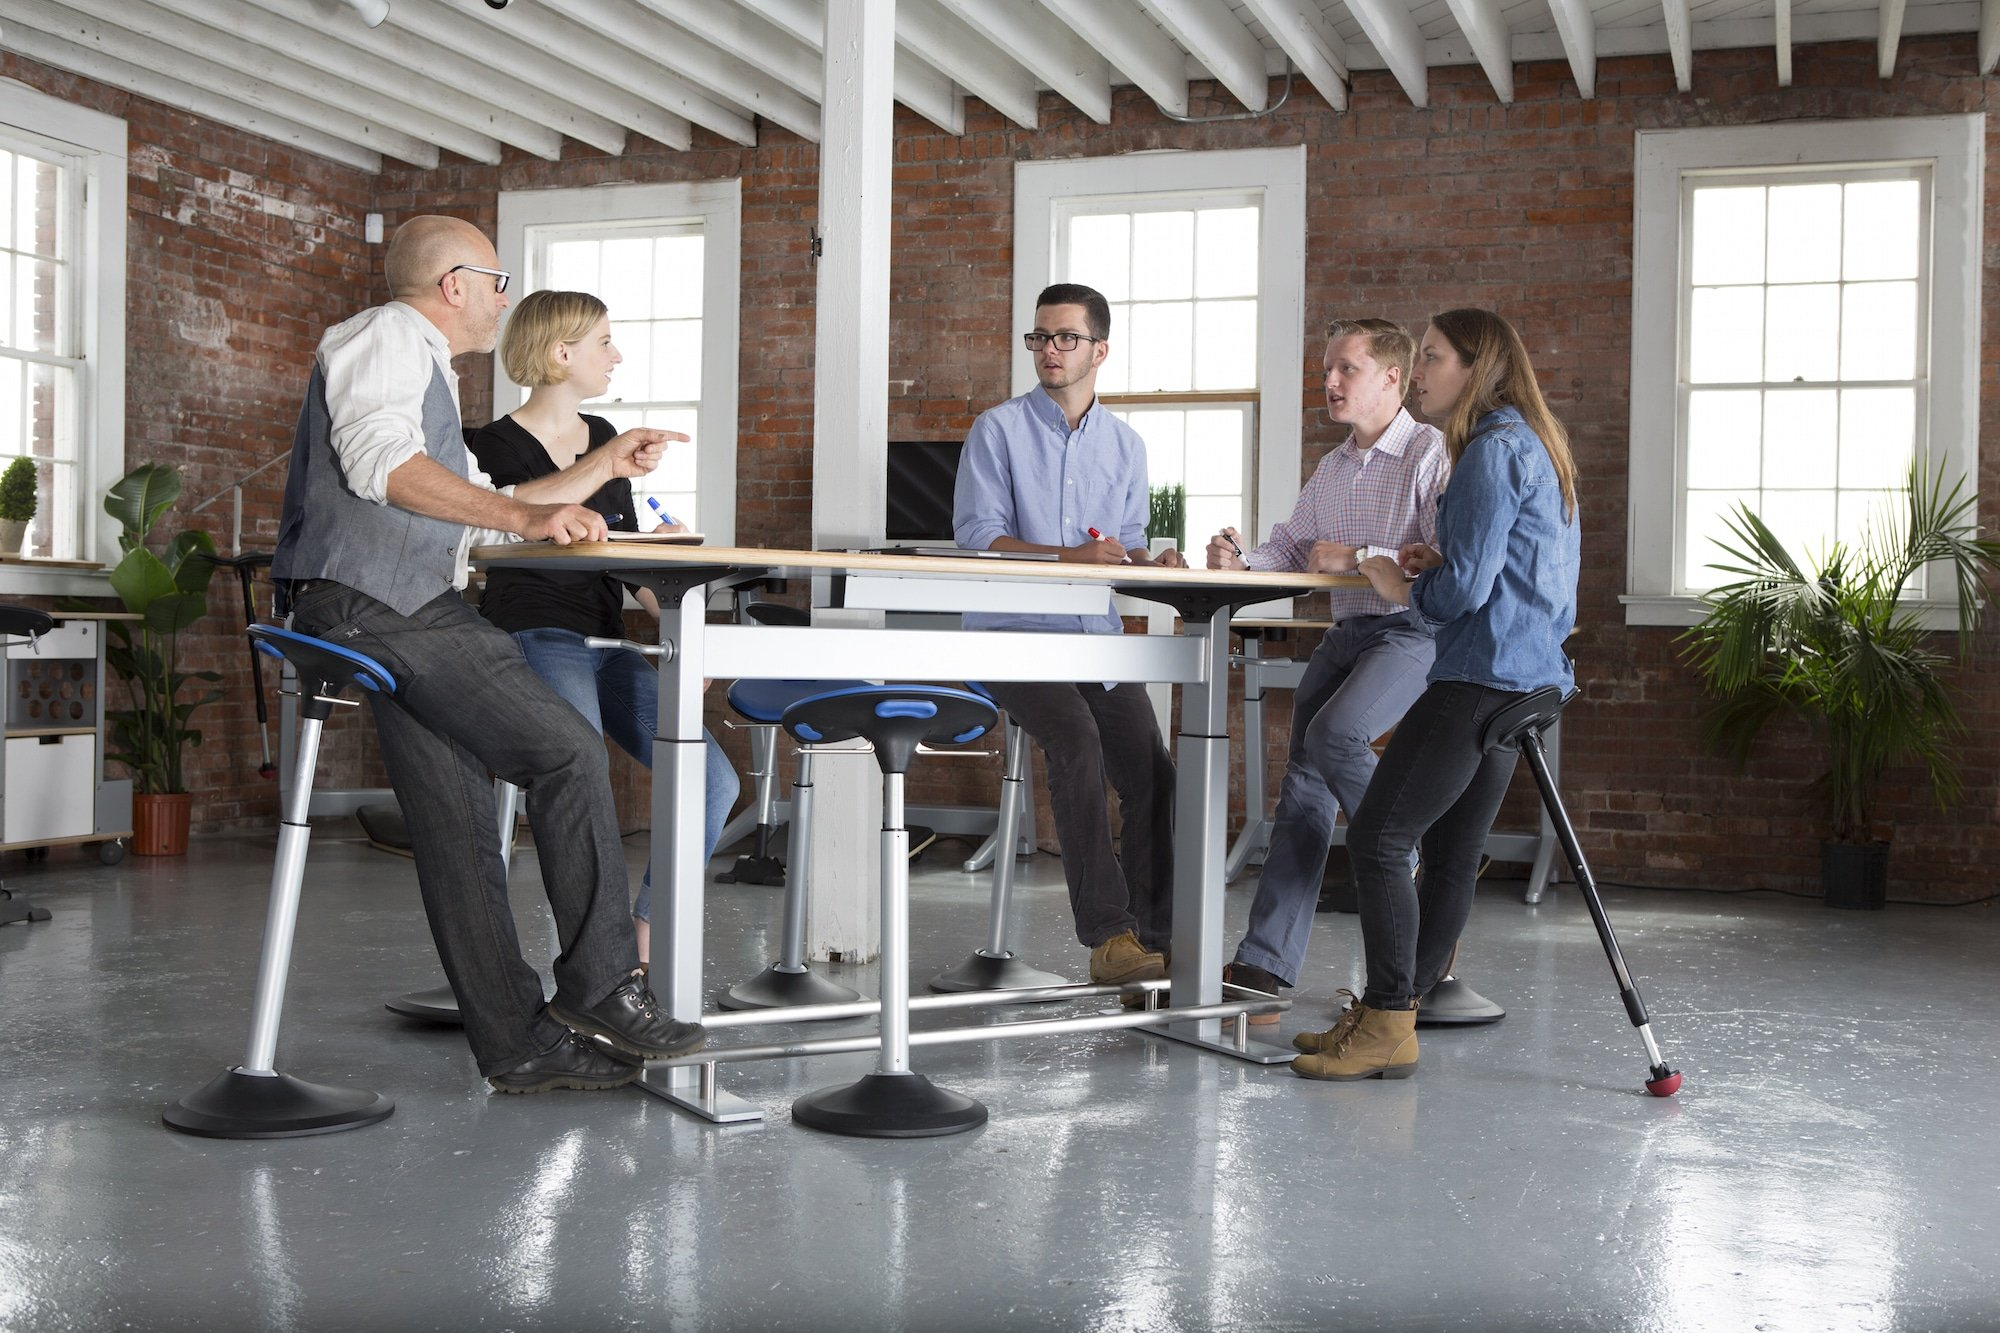 Focal Confluence Table Collaborative Office Interiors - Stand up conference table